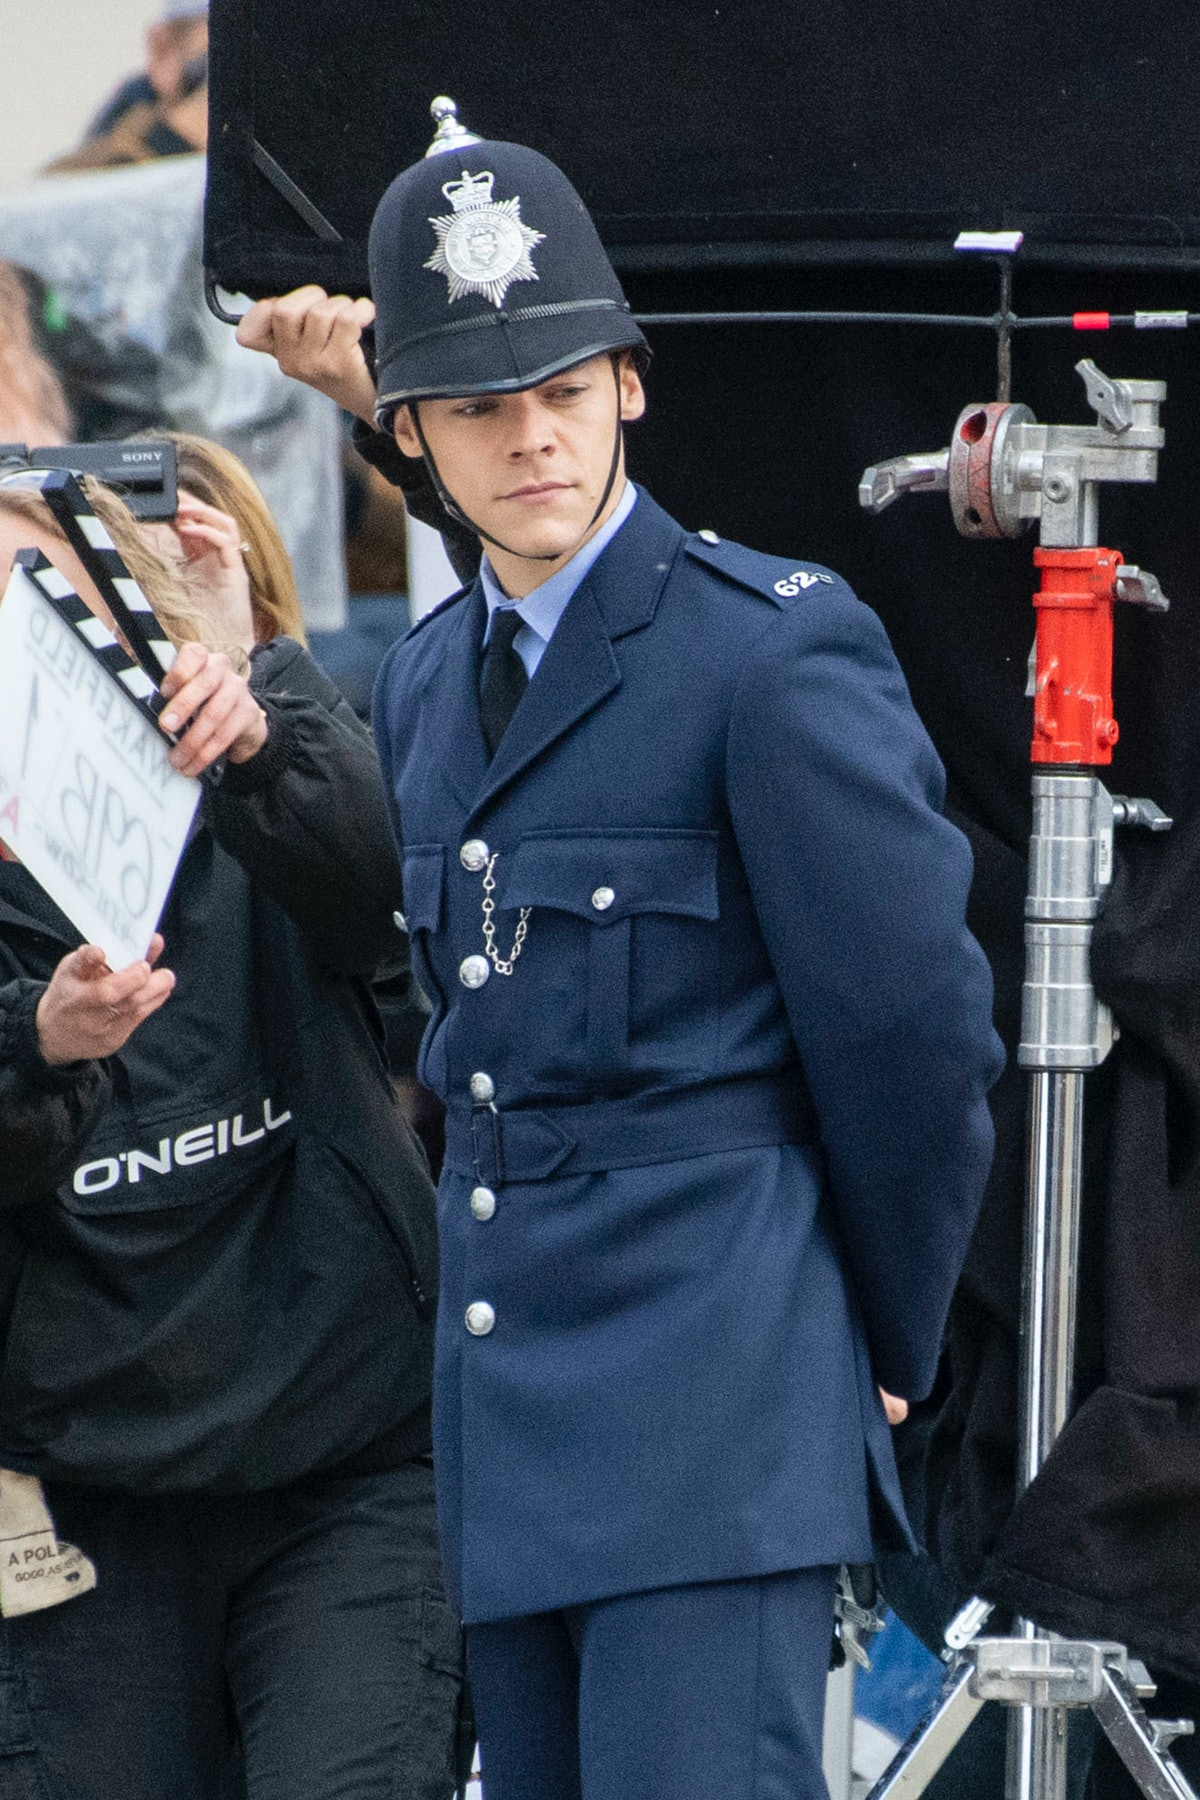 BRIGHTON, ENGLAND - MAY 04: Harry Styles is seen on the filmset for 'My Policeman' on May 04, 2021 in Brighton, England. (Photo by Neil Mockford/GC Images)